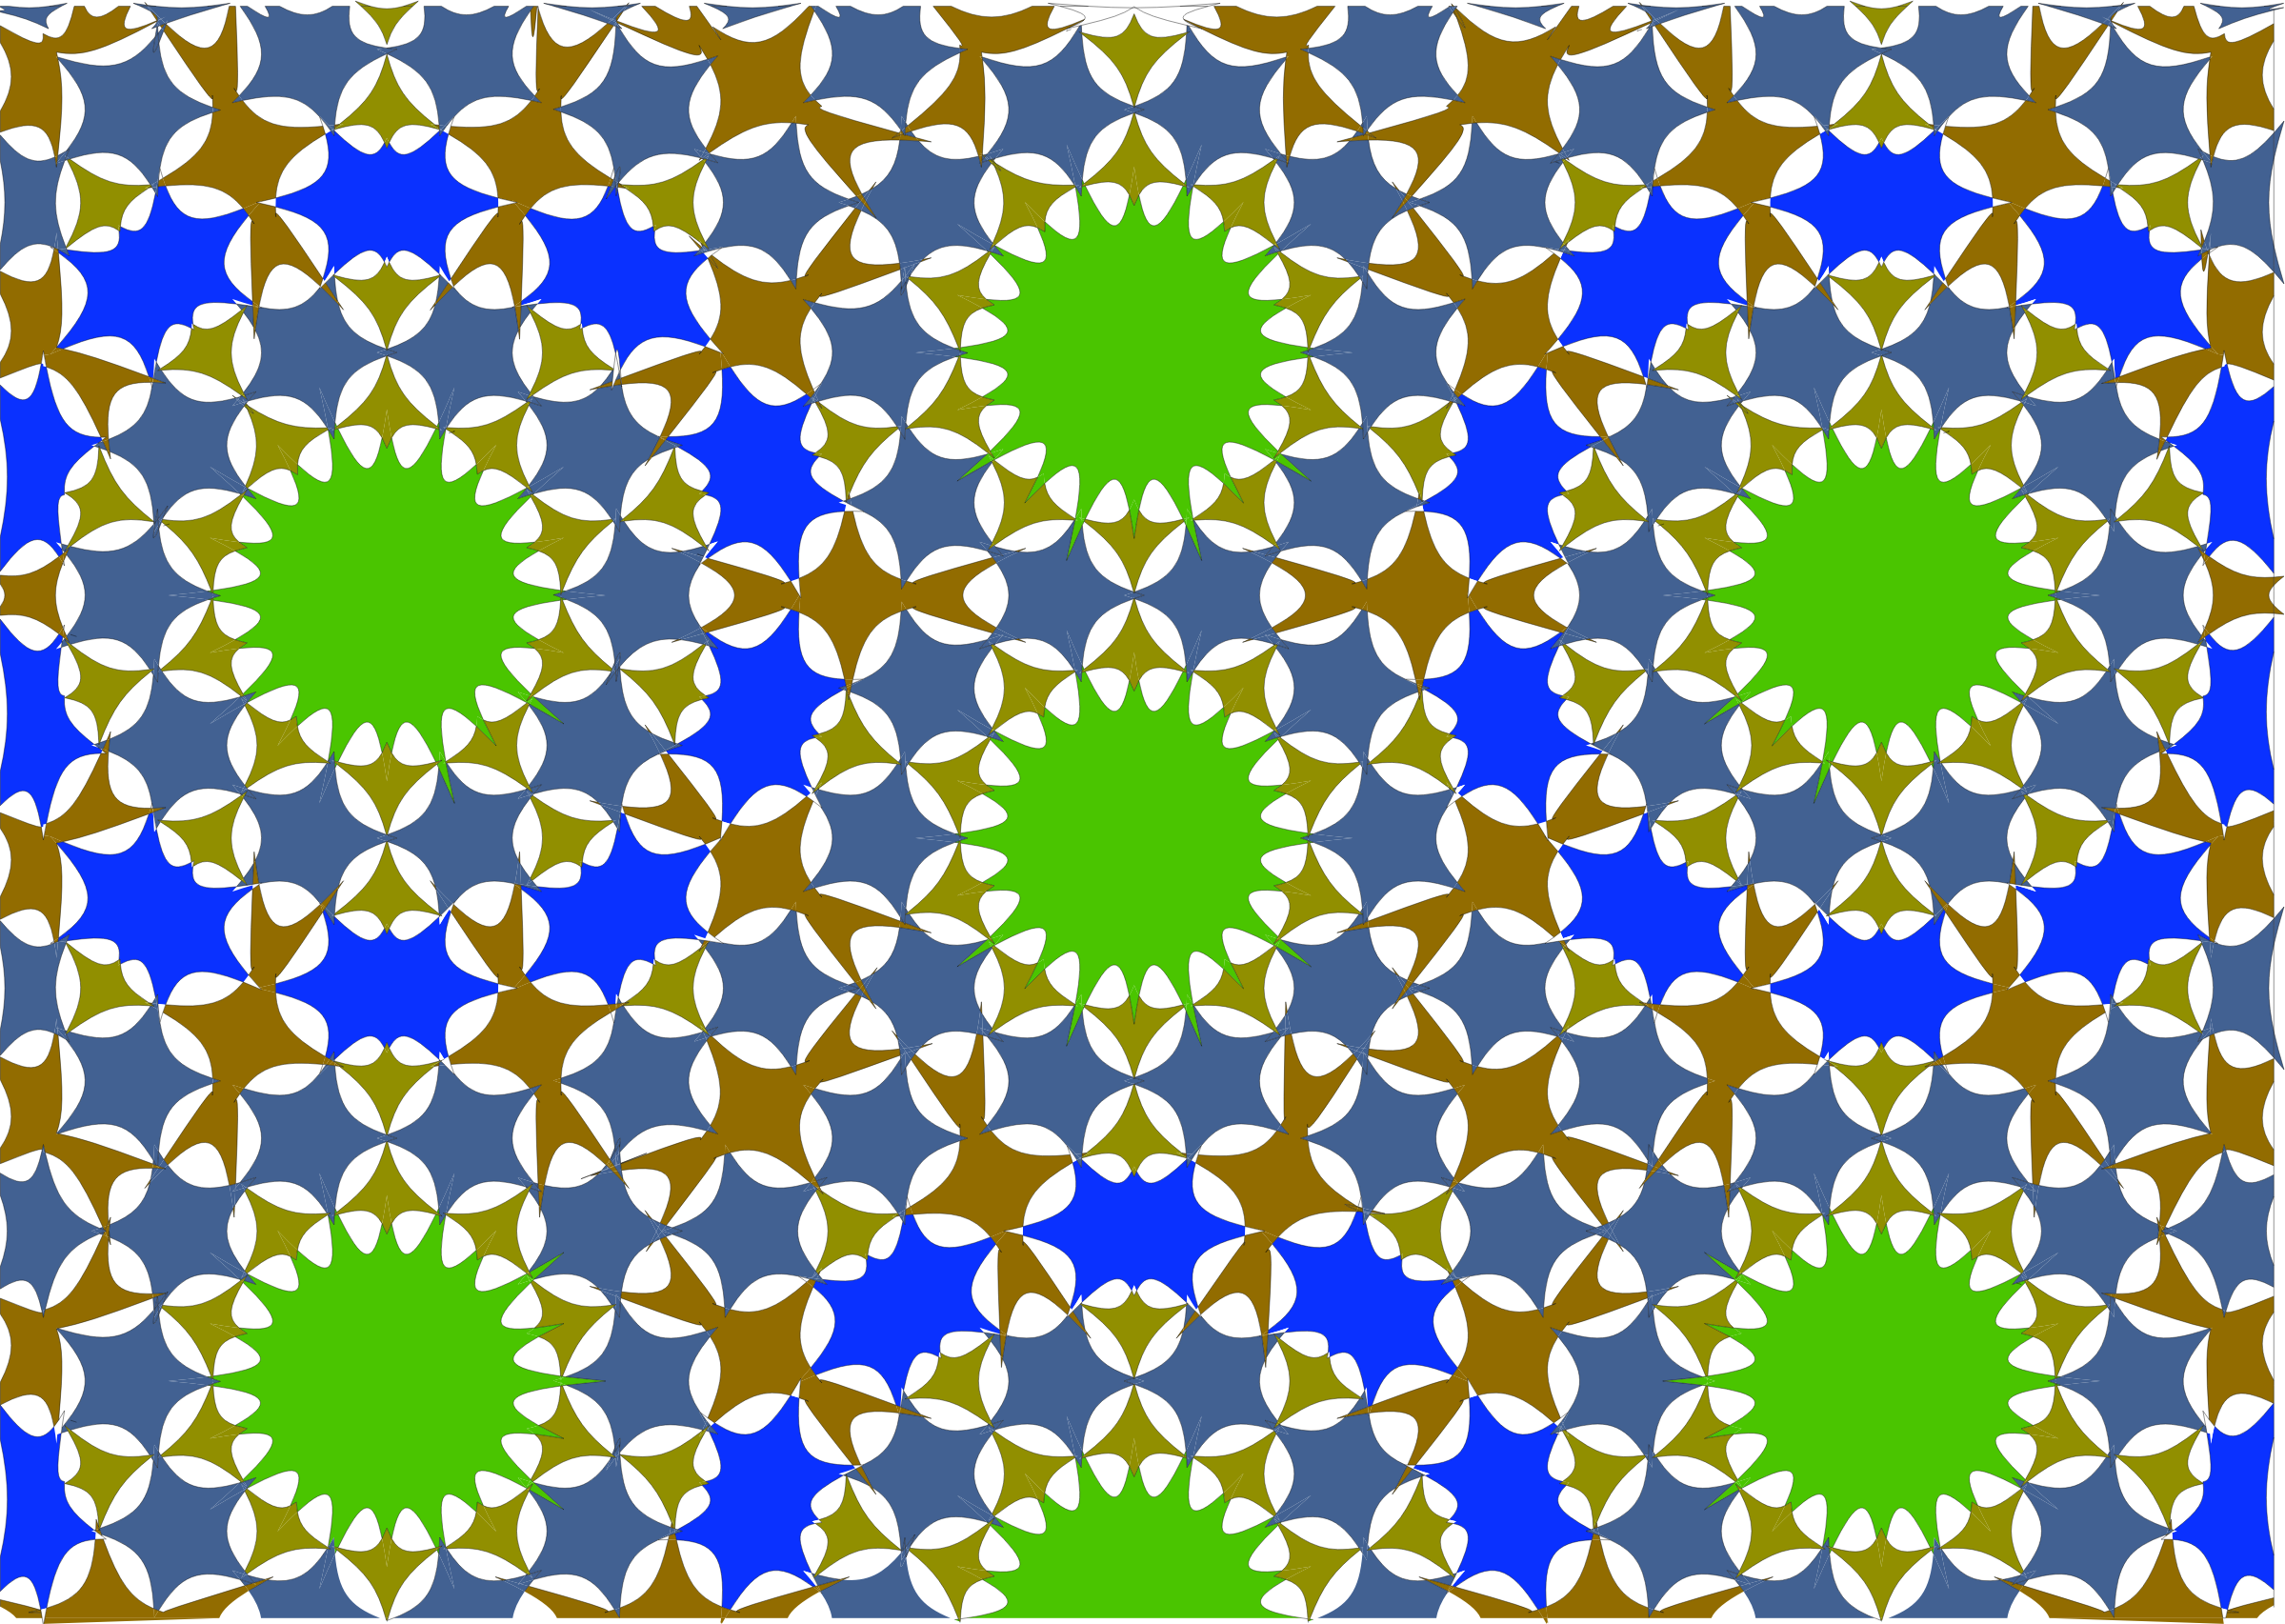 Islamic Geometric Tile 7 by GDJ